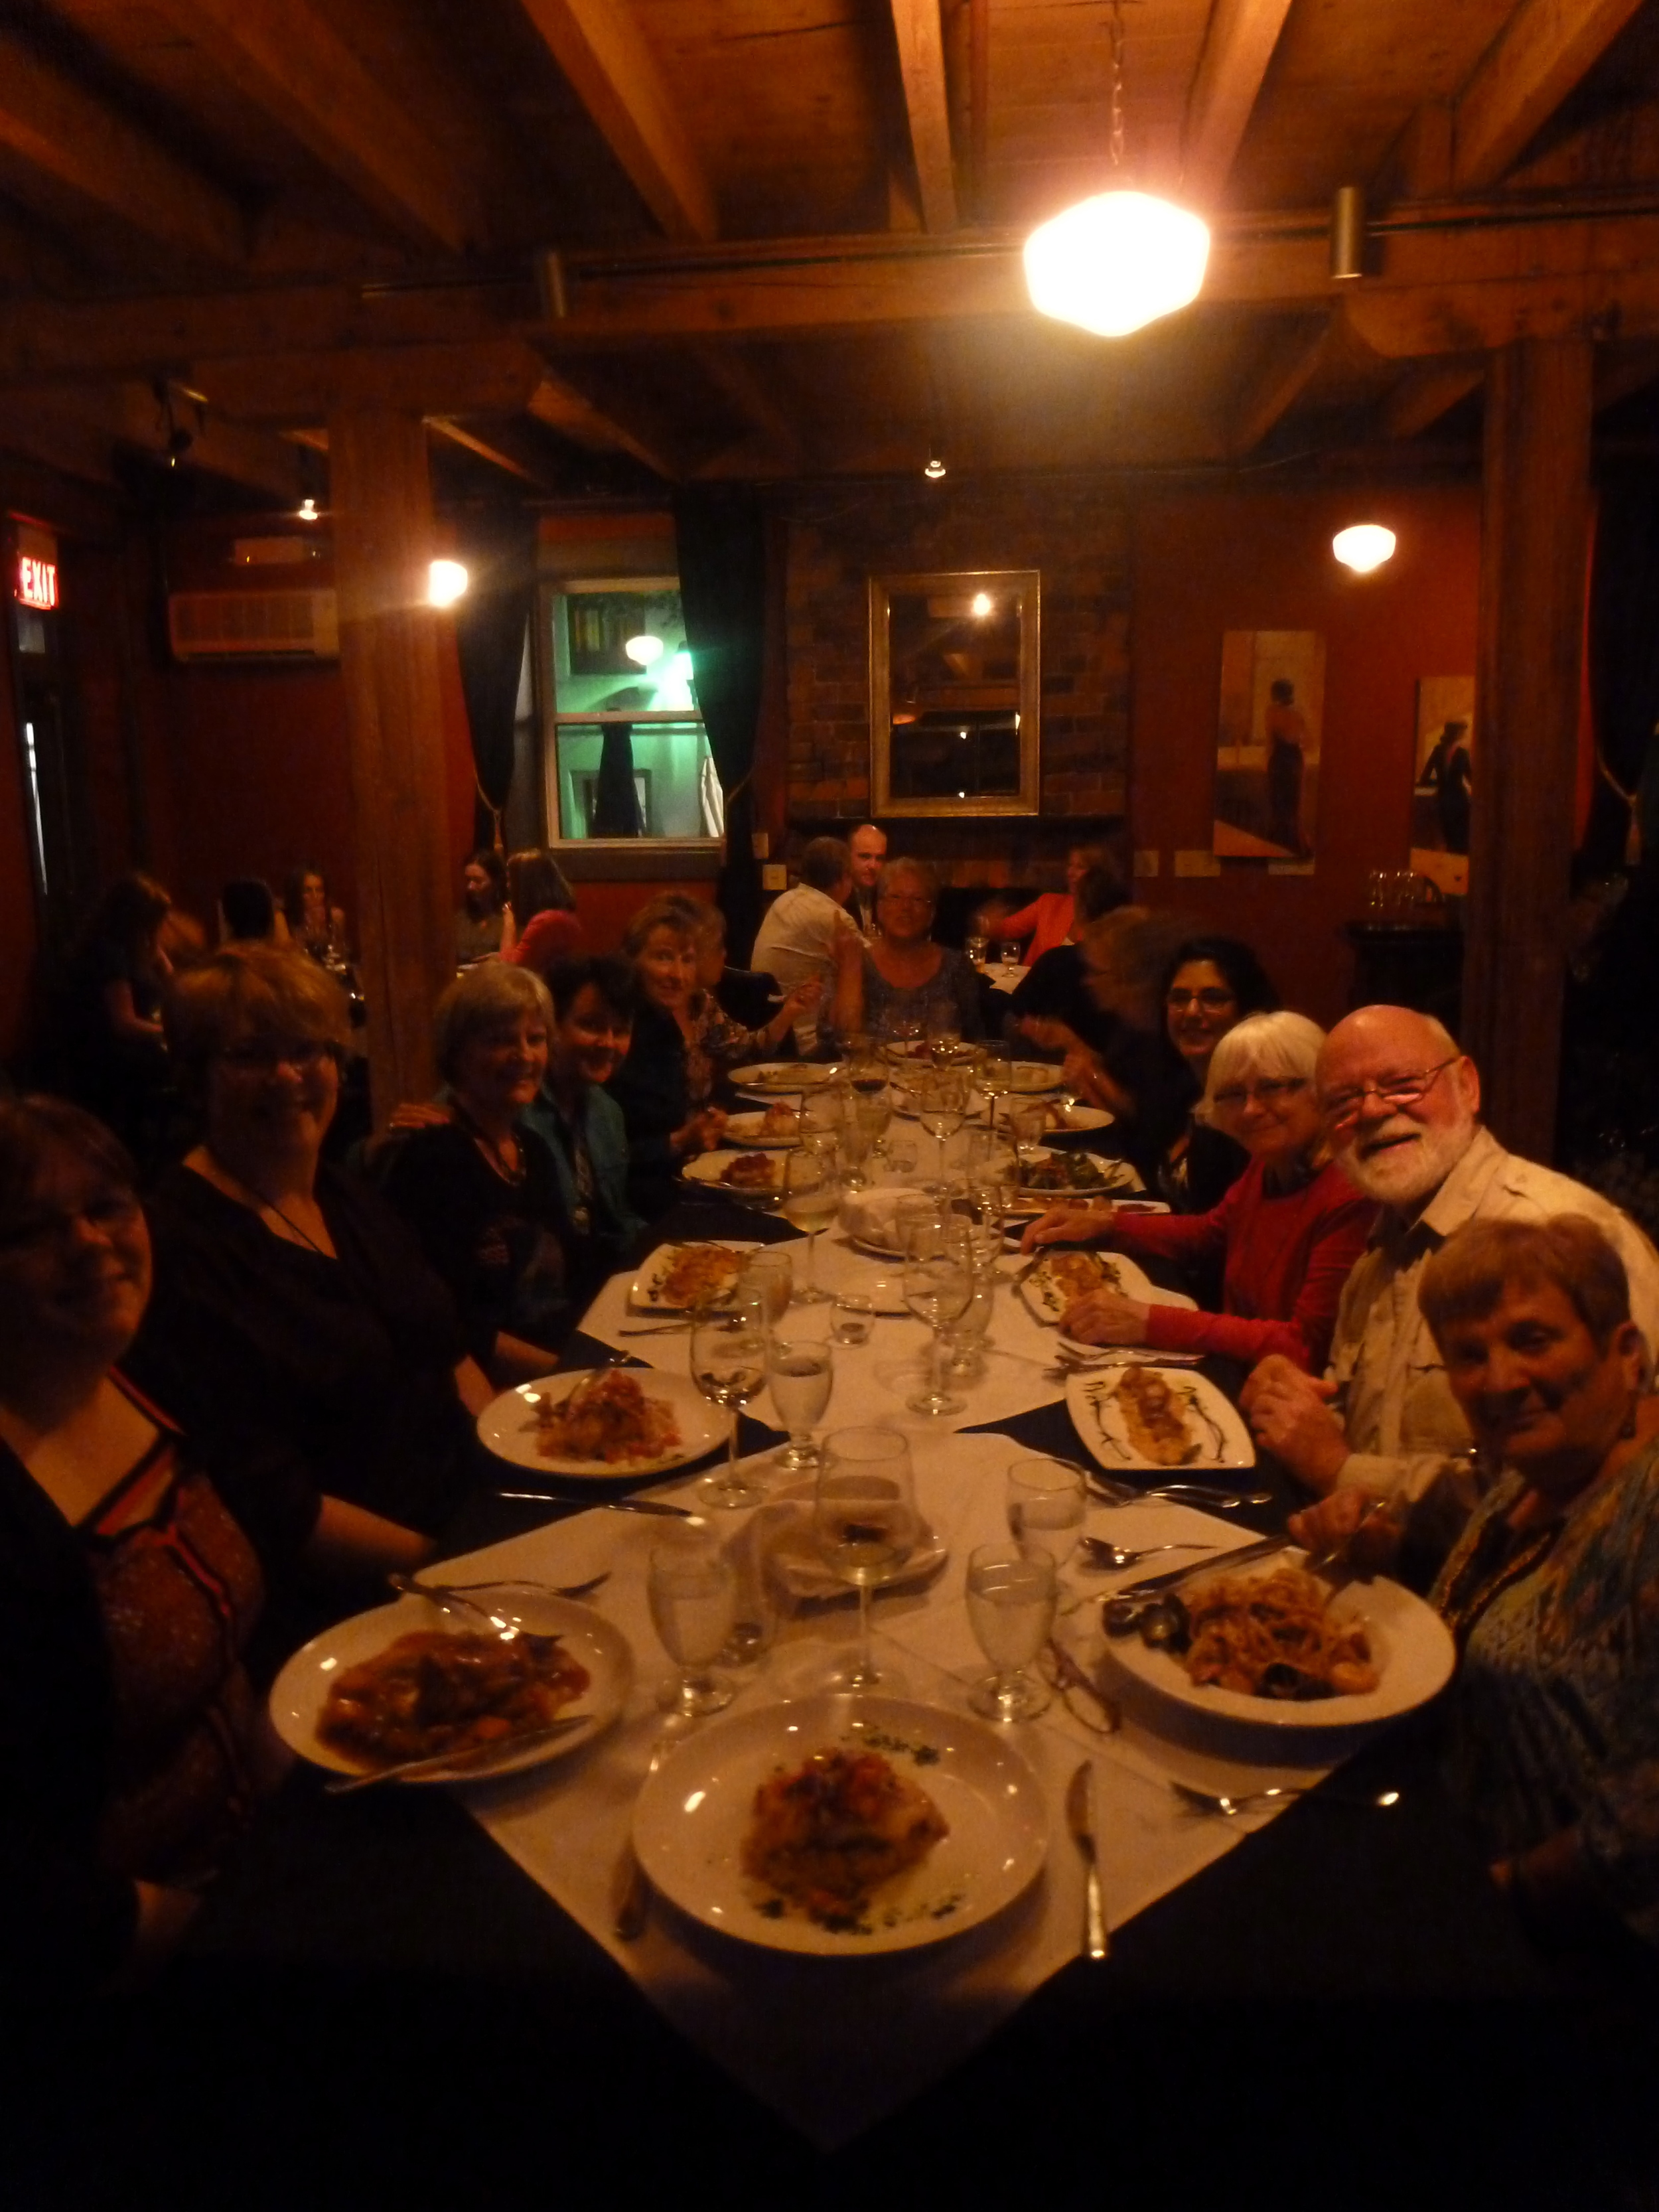 My awesome group eating the first of many incredible meals